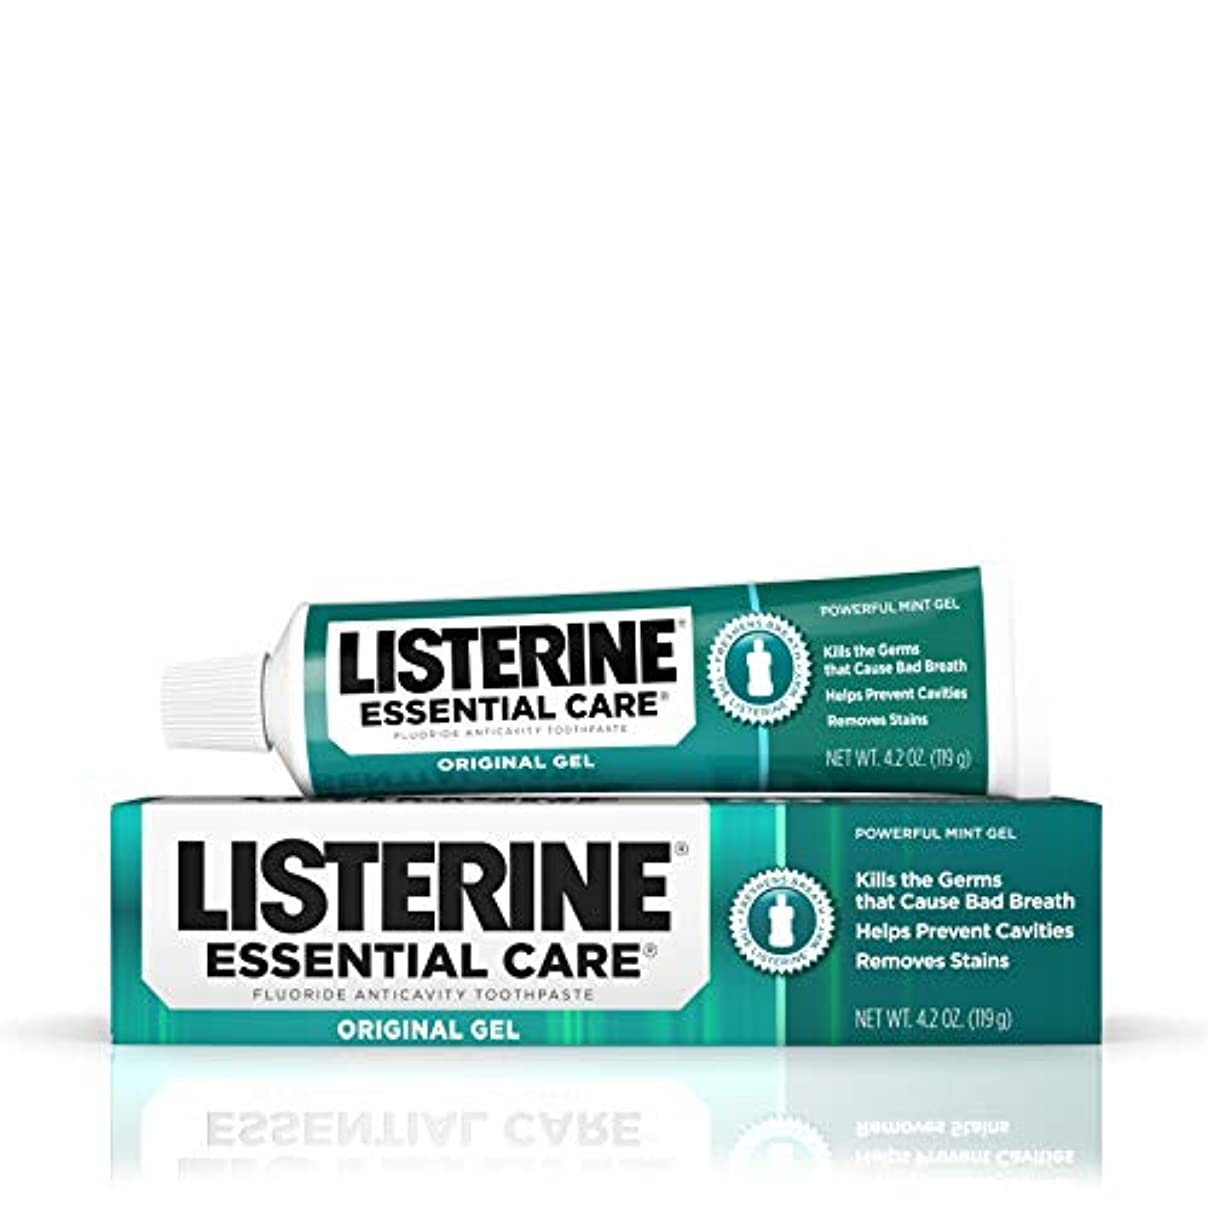 野生組規定海外直送品Listerine Essential Care Toothpaste Gel Original, Powerful Mint 4.2 oz by Listerine